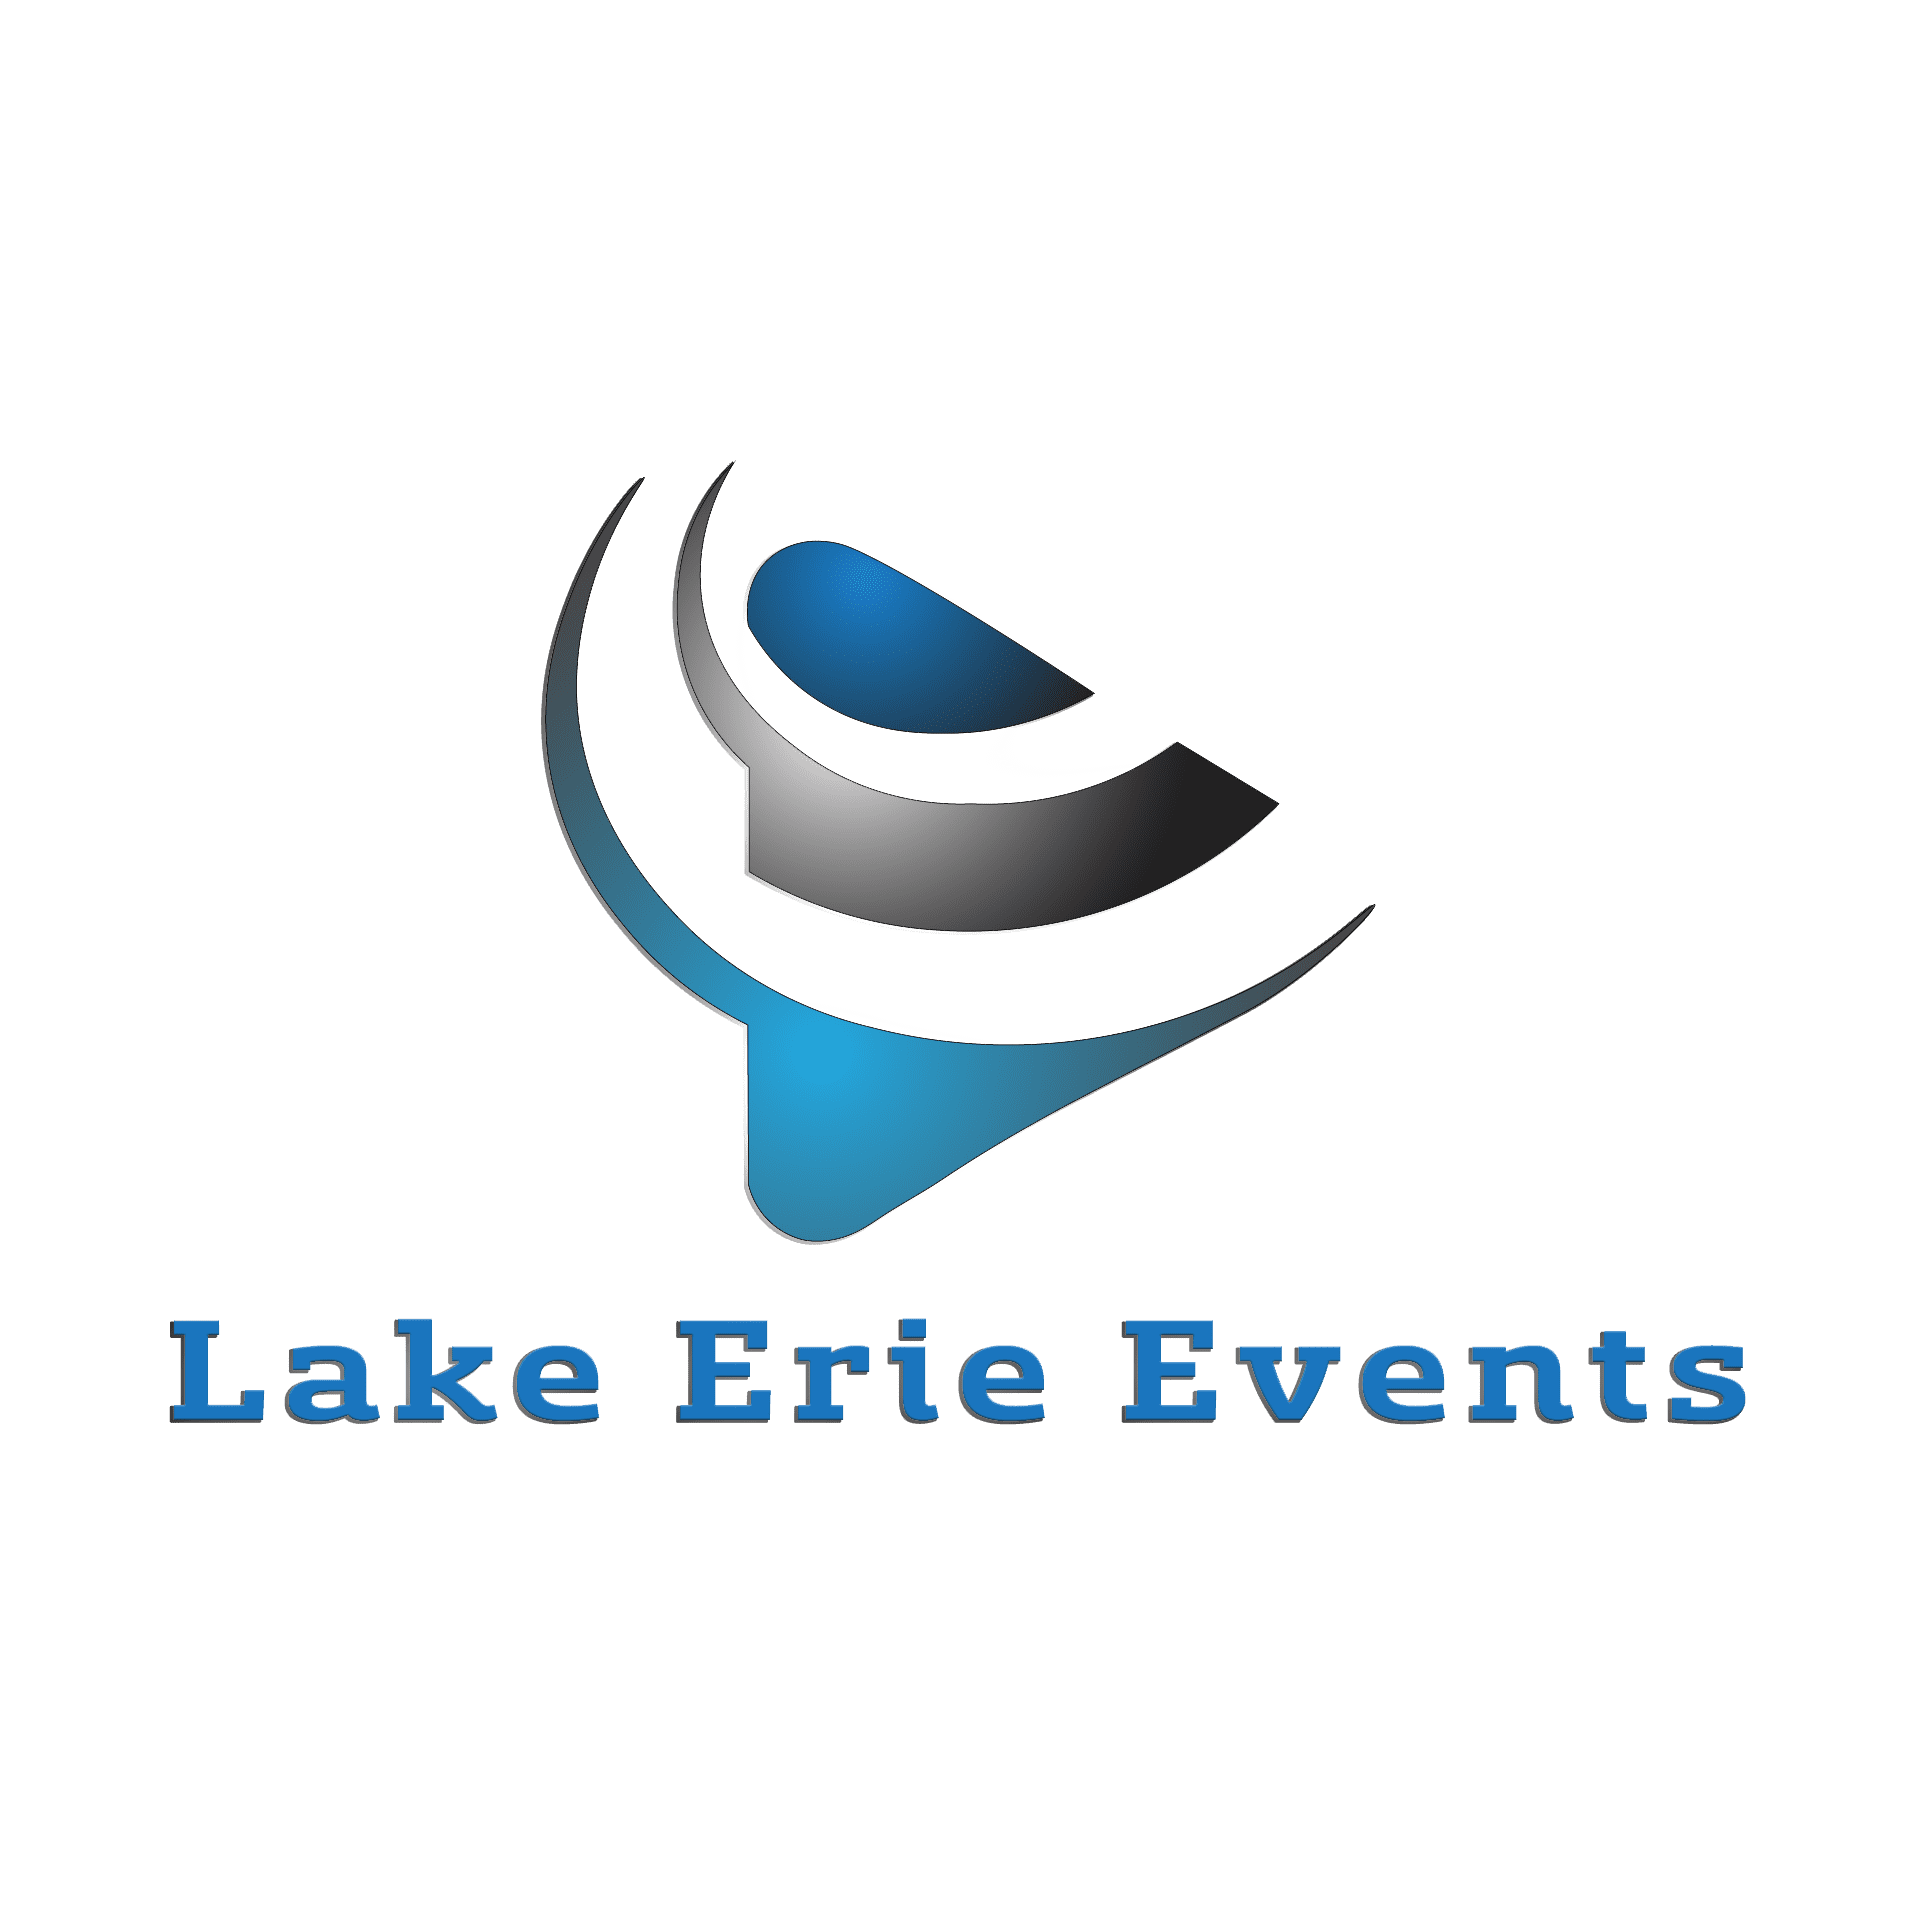 Lake Erie Events